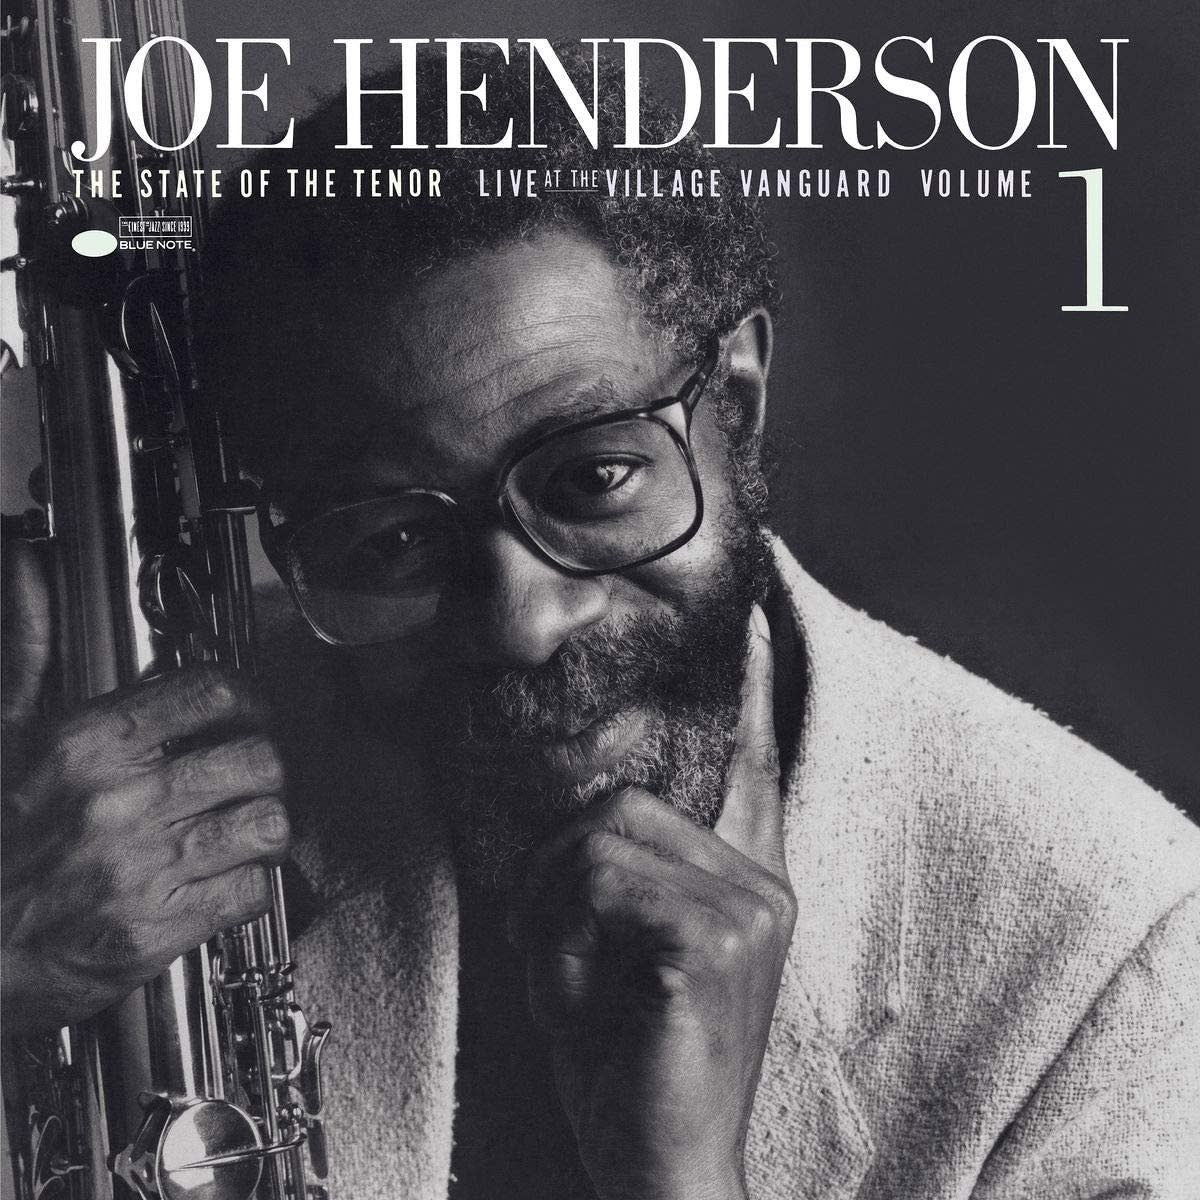 Joe Henderson – The State Of The Tenor (Live At The Village Vanguard Volume 1)